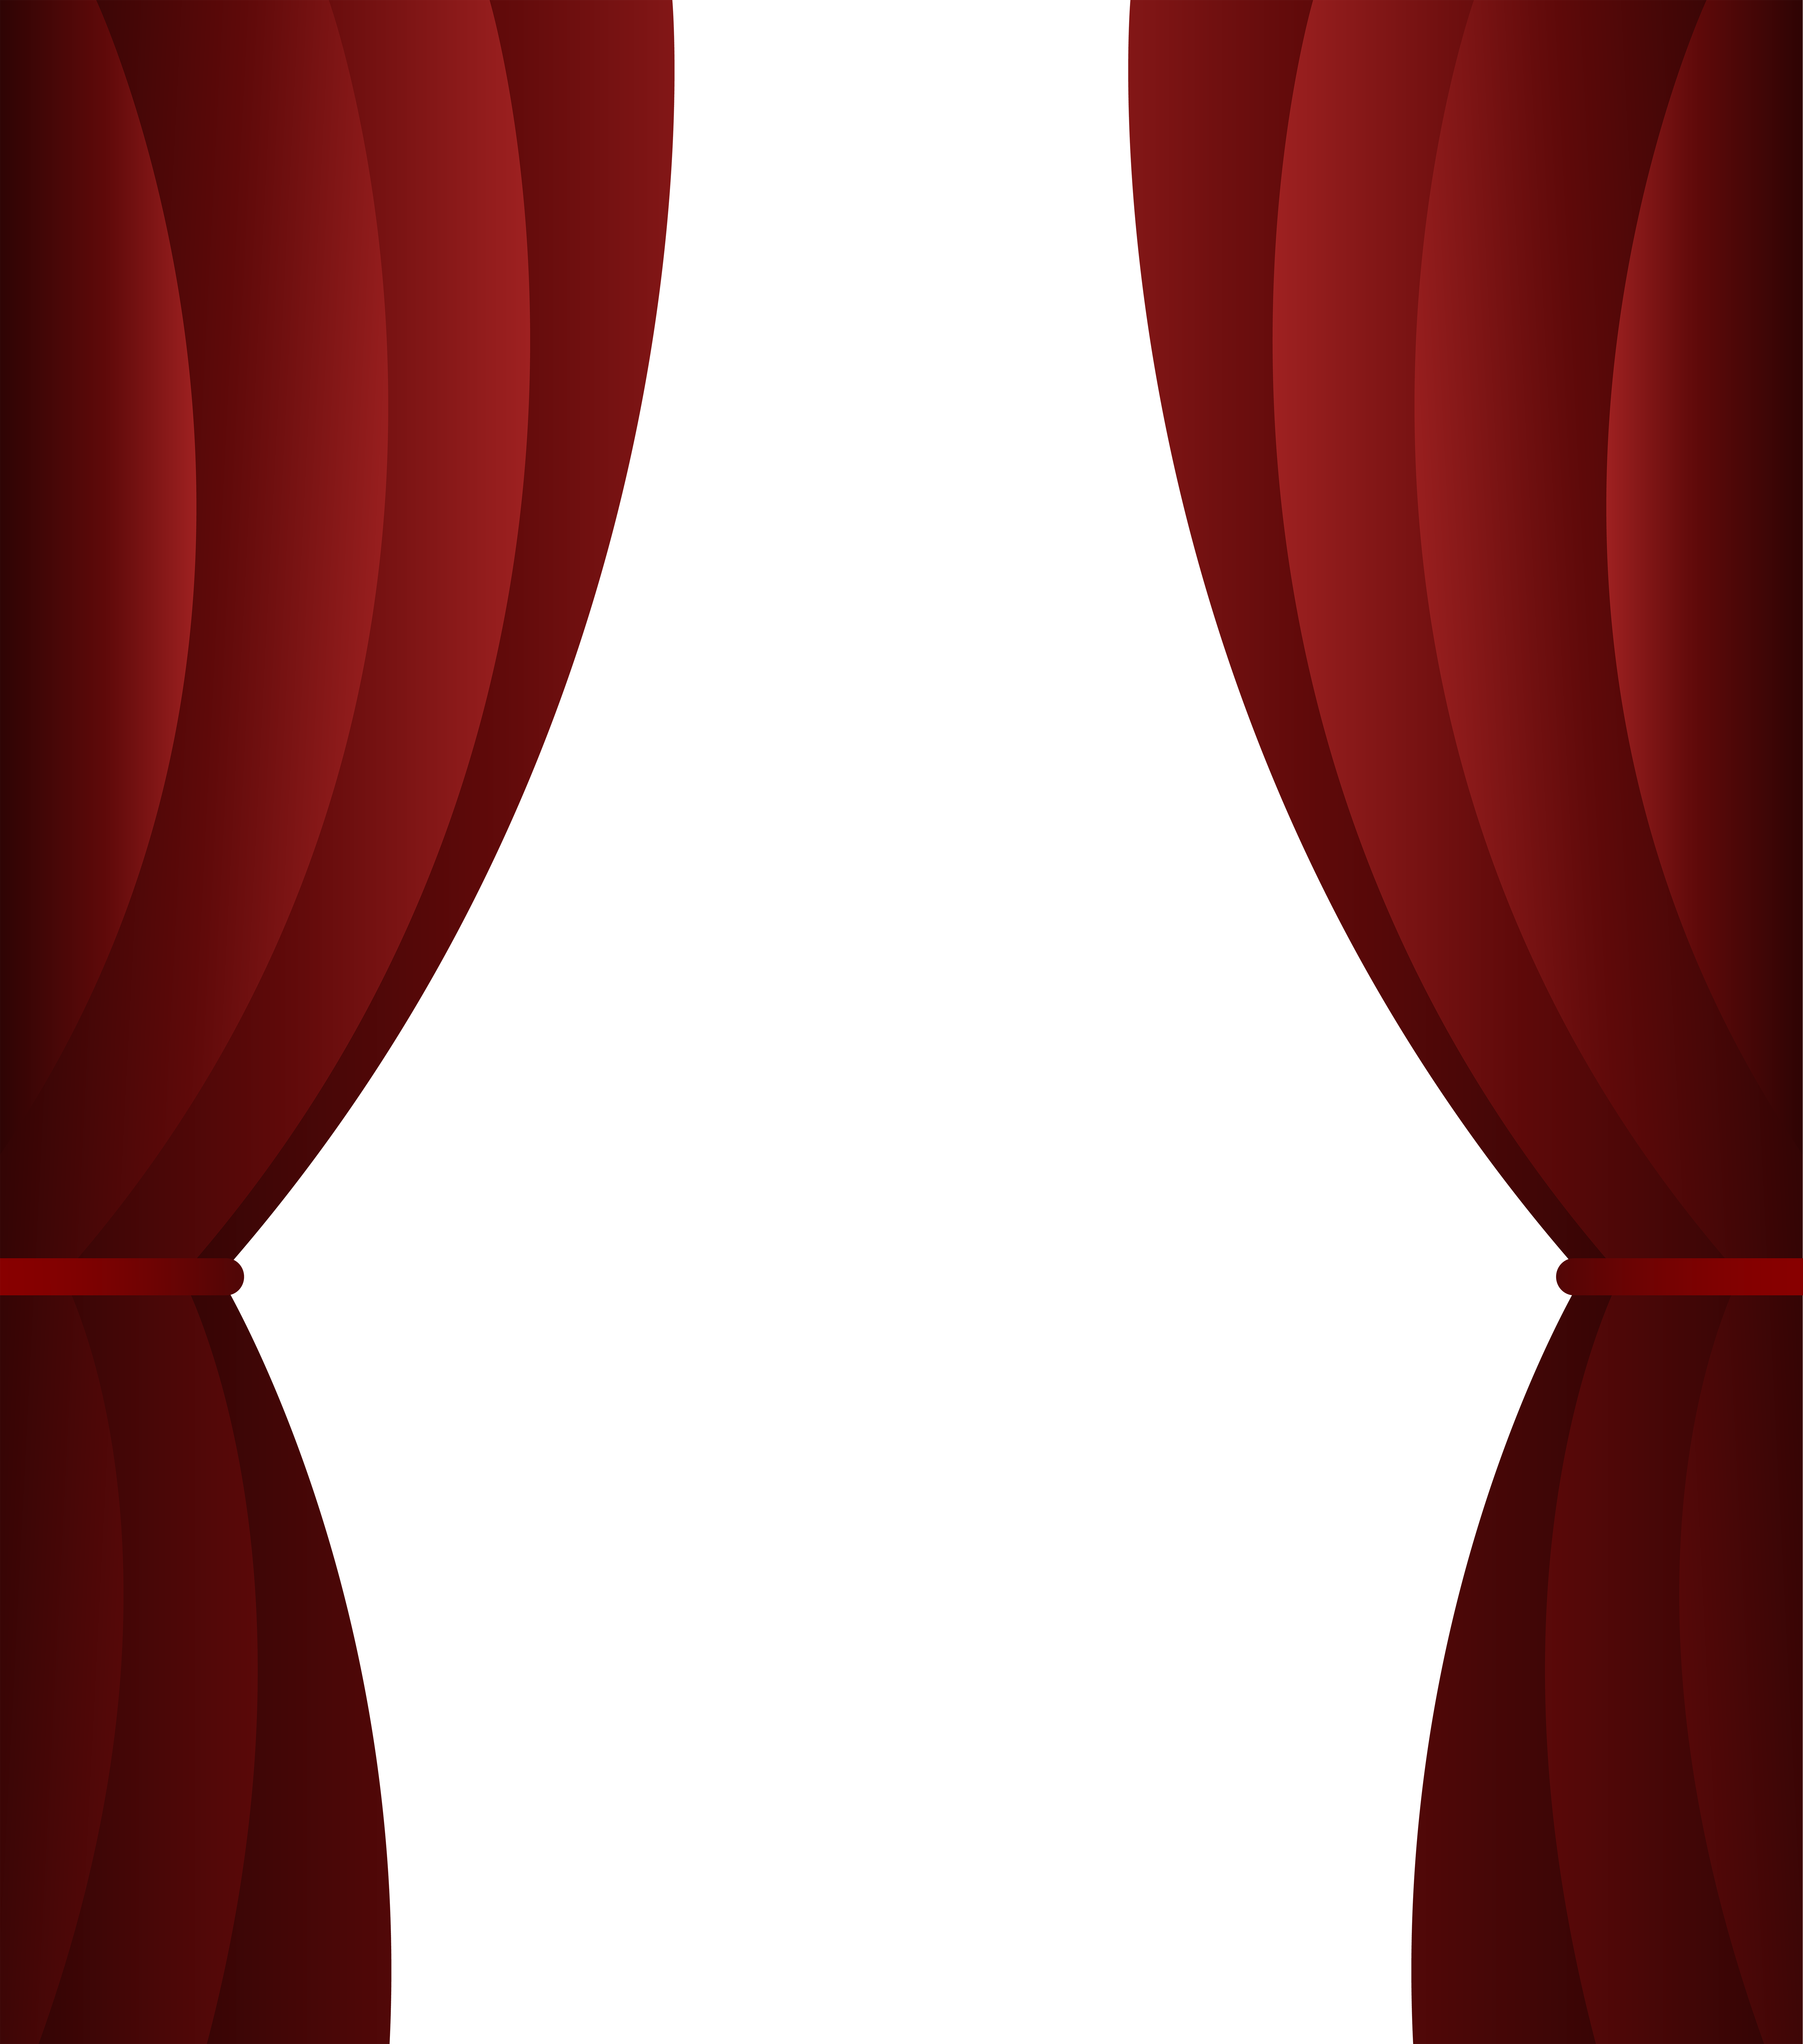 Red curtain transparent png. Curtains clipart pixel art